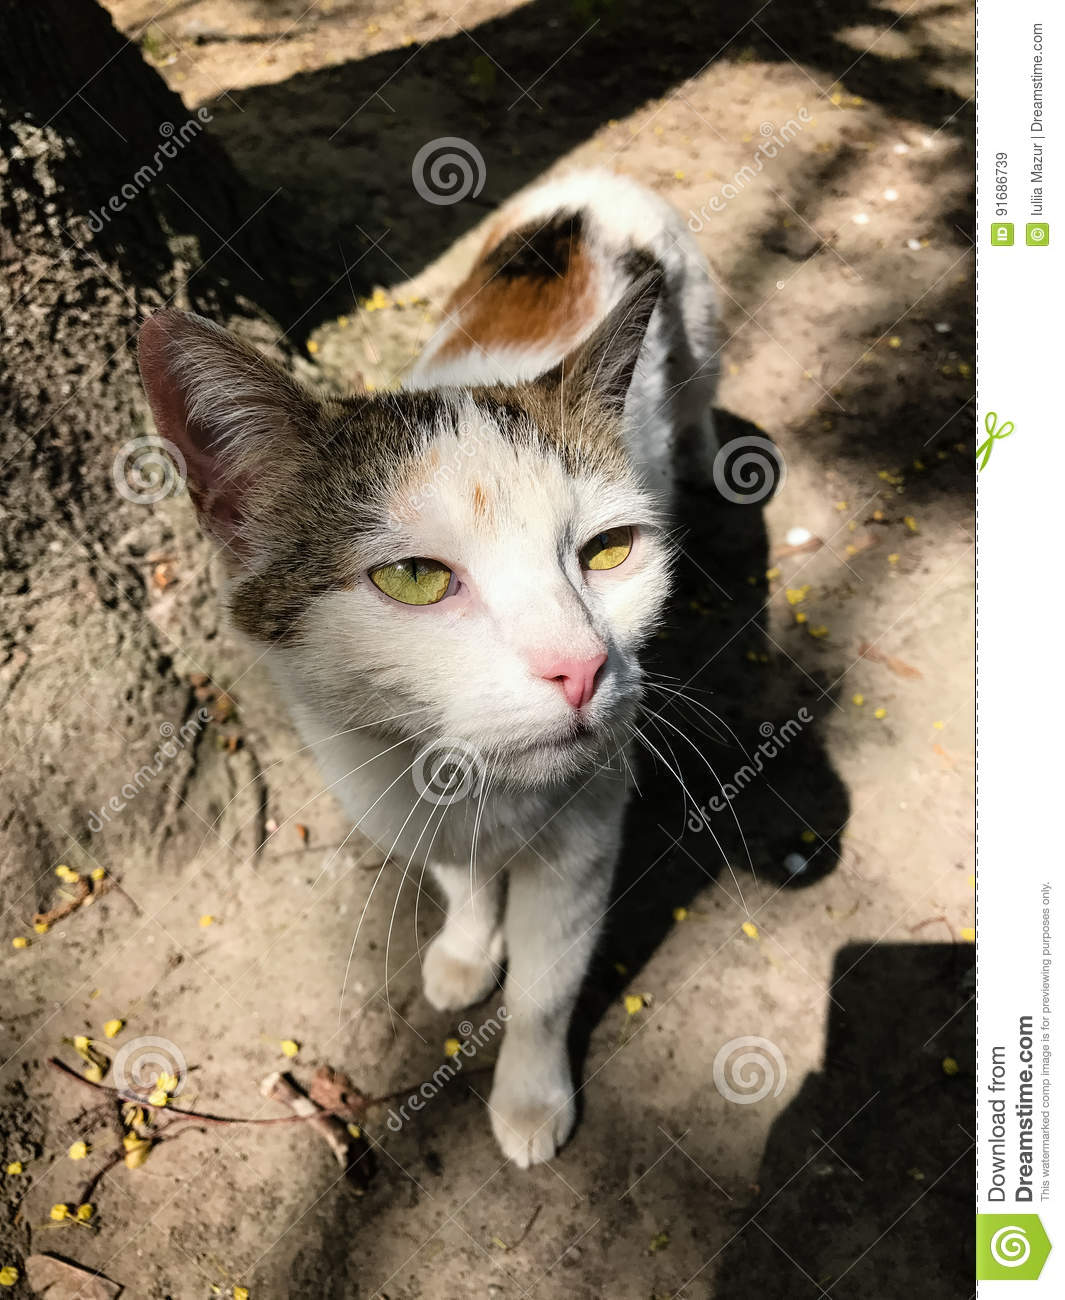 732 Ugly Cat Photos - Free & Royalty-Free Stock Photos from Dreamstime